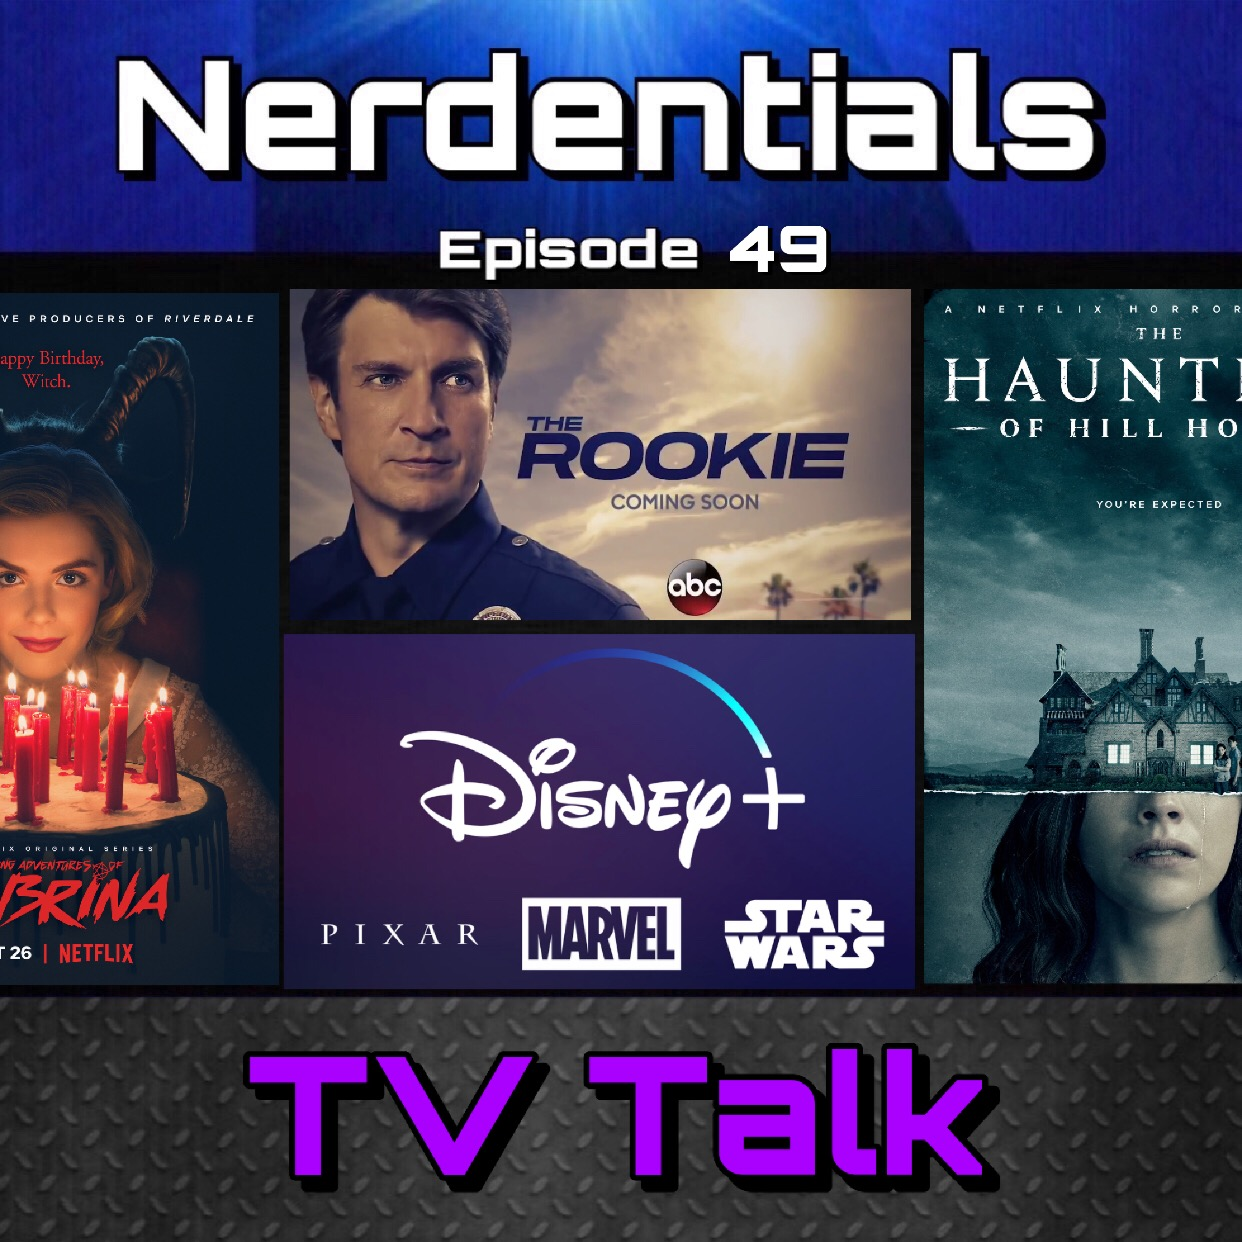 - Welcome to Nerdentials! Your weekly dose of the nerdy essentials. Covering Film, TV, Video Games and Comics.This week in TV Talk... Your nerd hosts Nick and Joe go over what new original show we can expect from Disney's New